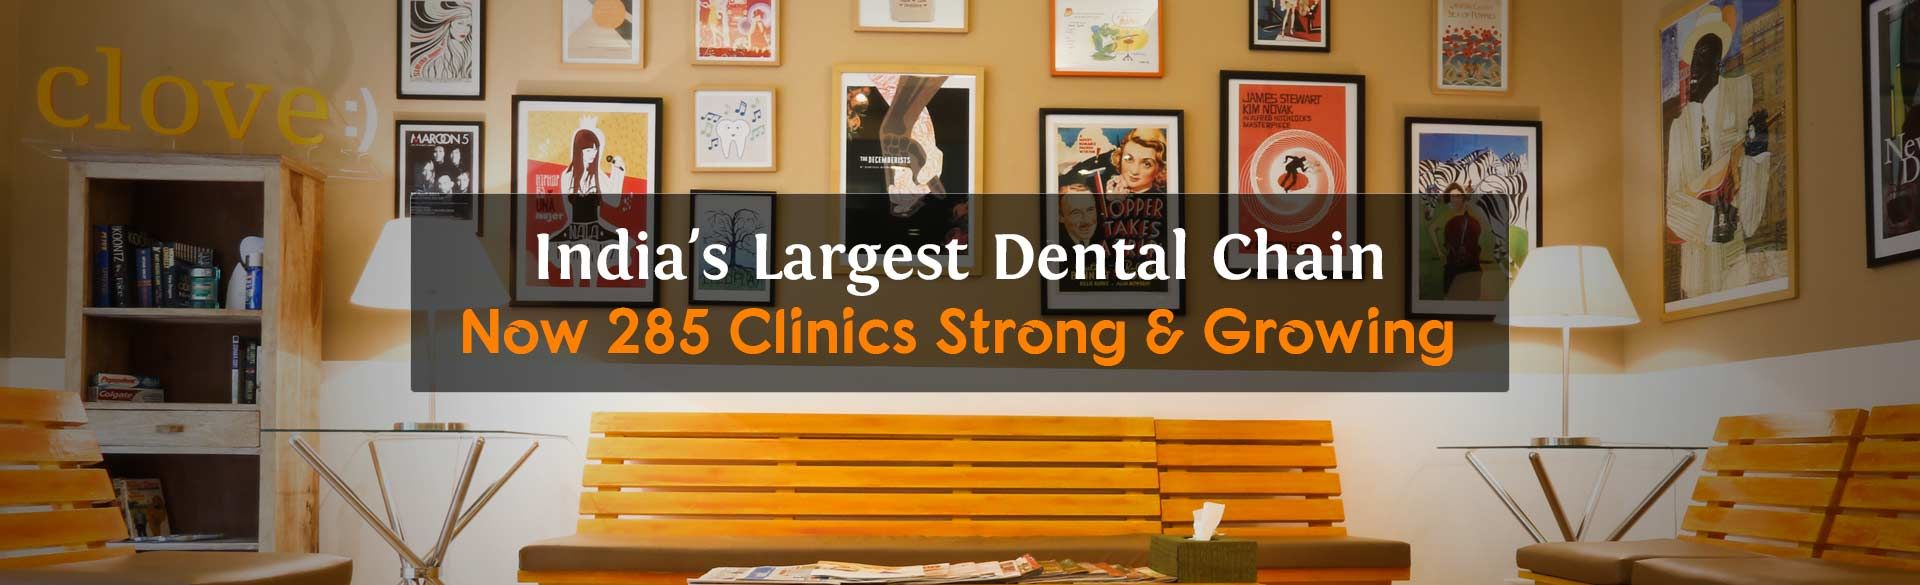 Largest Dental Chain in India | Best Dentists and Dental Clinics Near You